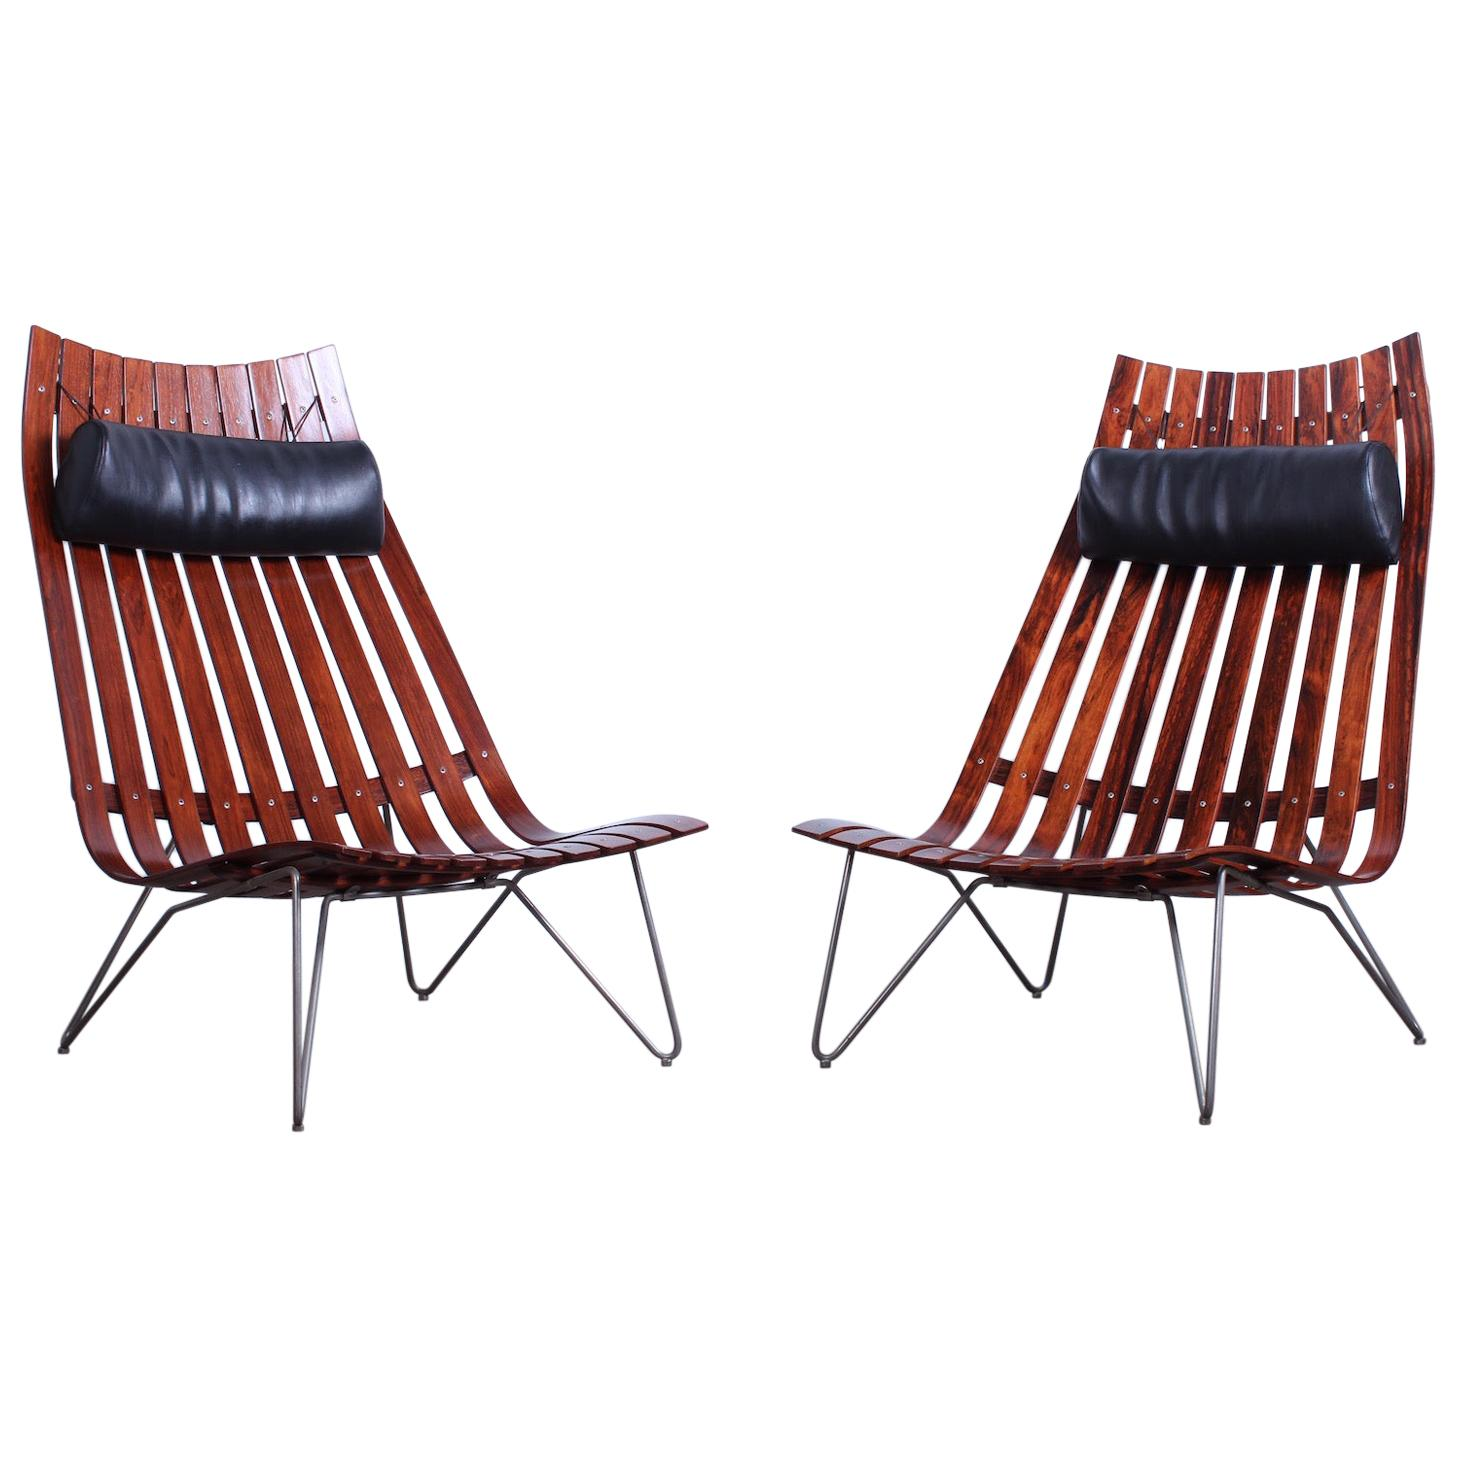 Pair of Large Rosewood Lounge Chairs by Hans Brattrud